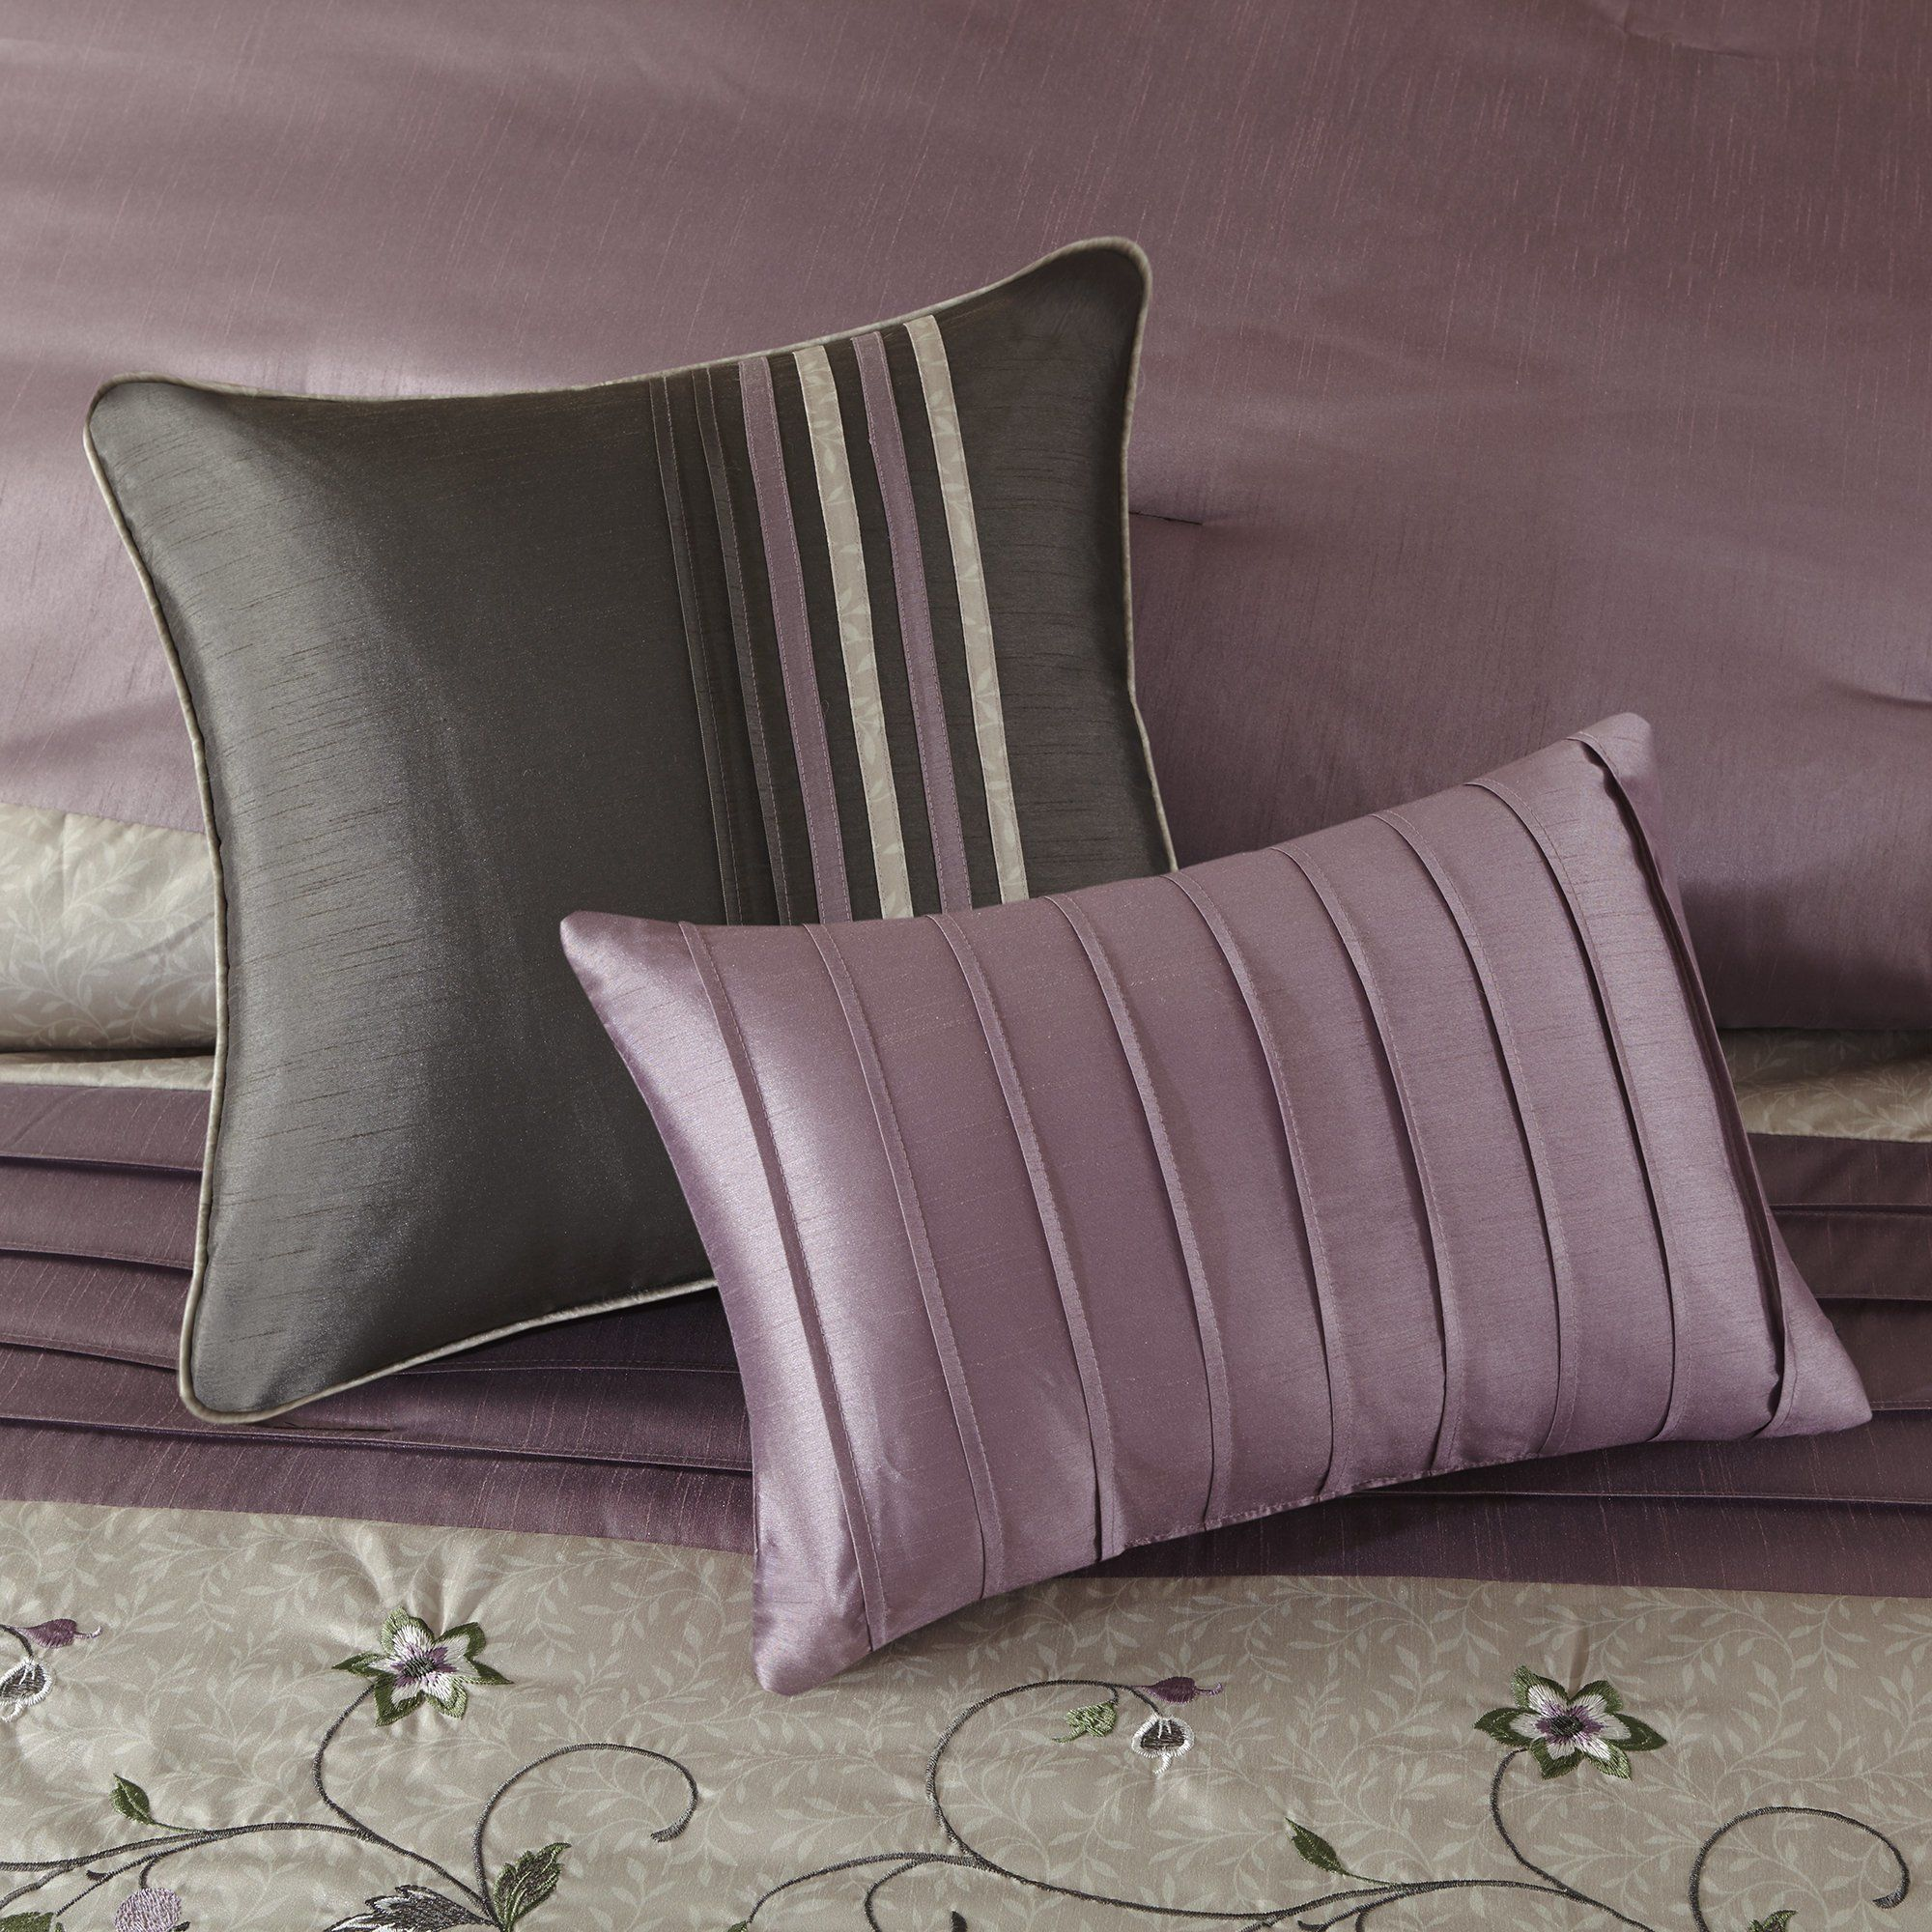 7 Piece Plum Purple Charcoal Grey Floral Embroidery Comforter Queen